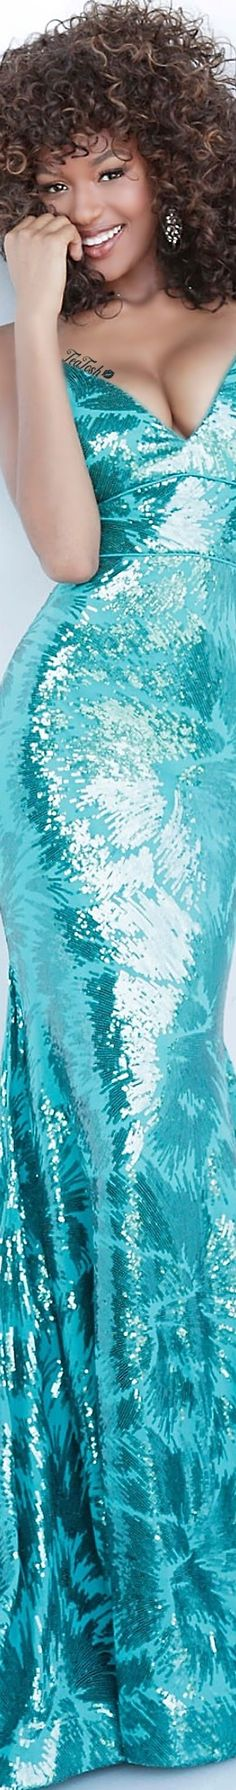 Evening Dresses, Formal Dresses, Shades Of Turquoise, High End Fashion, Play Dress, Tiffany Blue, Merry And Bright, Black Beauty, Playing Dress Up